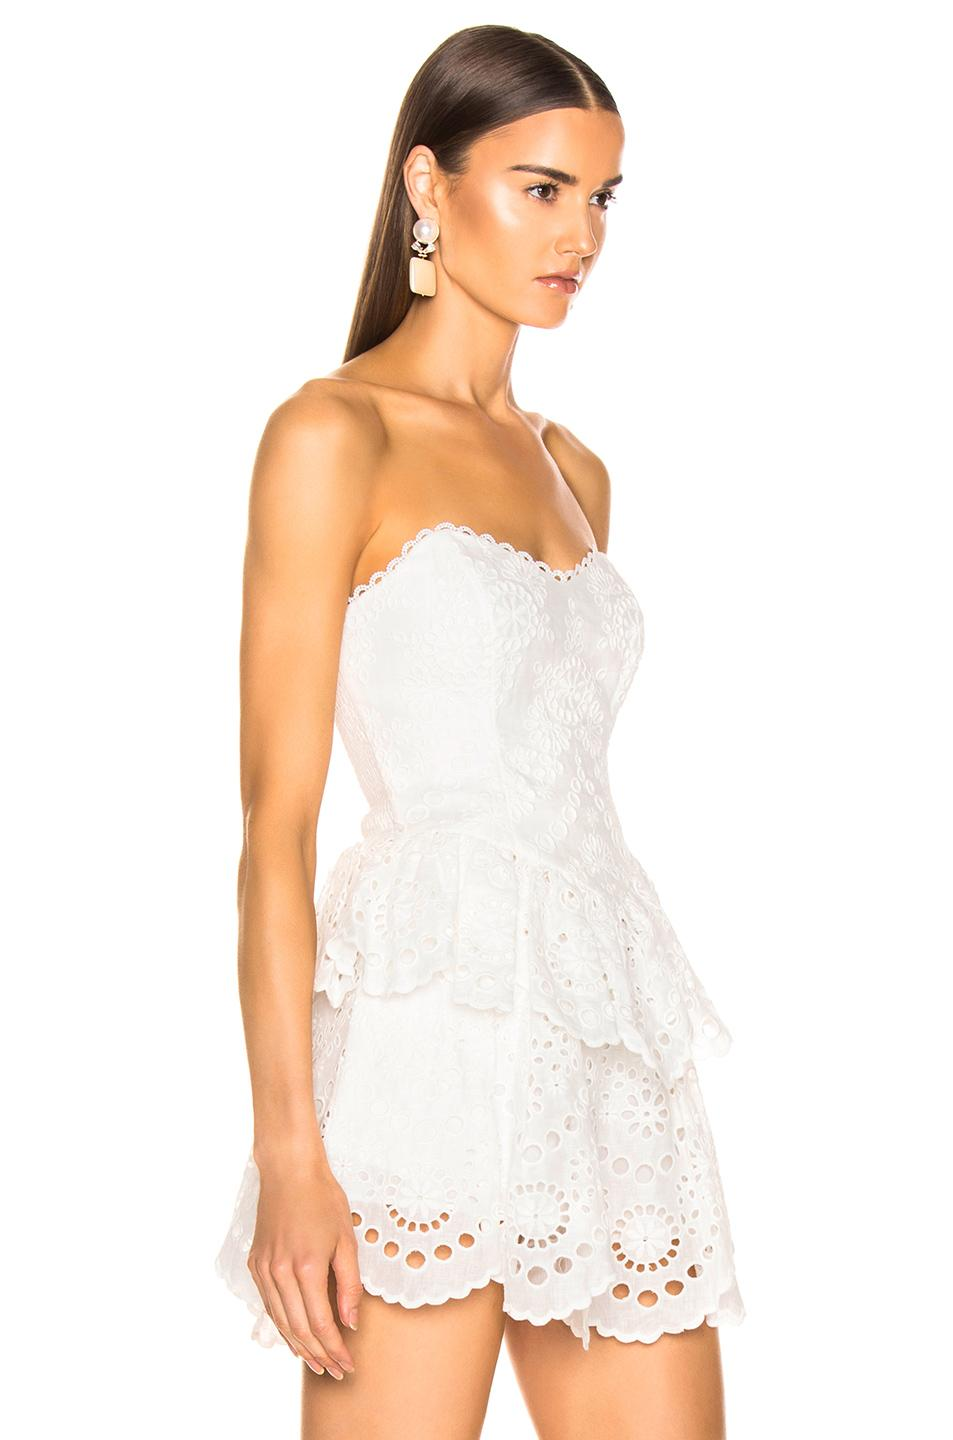 ea456e74d2c91 Zimmermann Bowie Strapless Bodice Top in White - Lyst